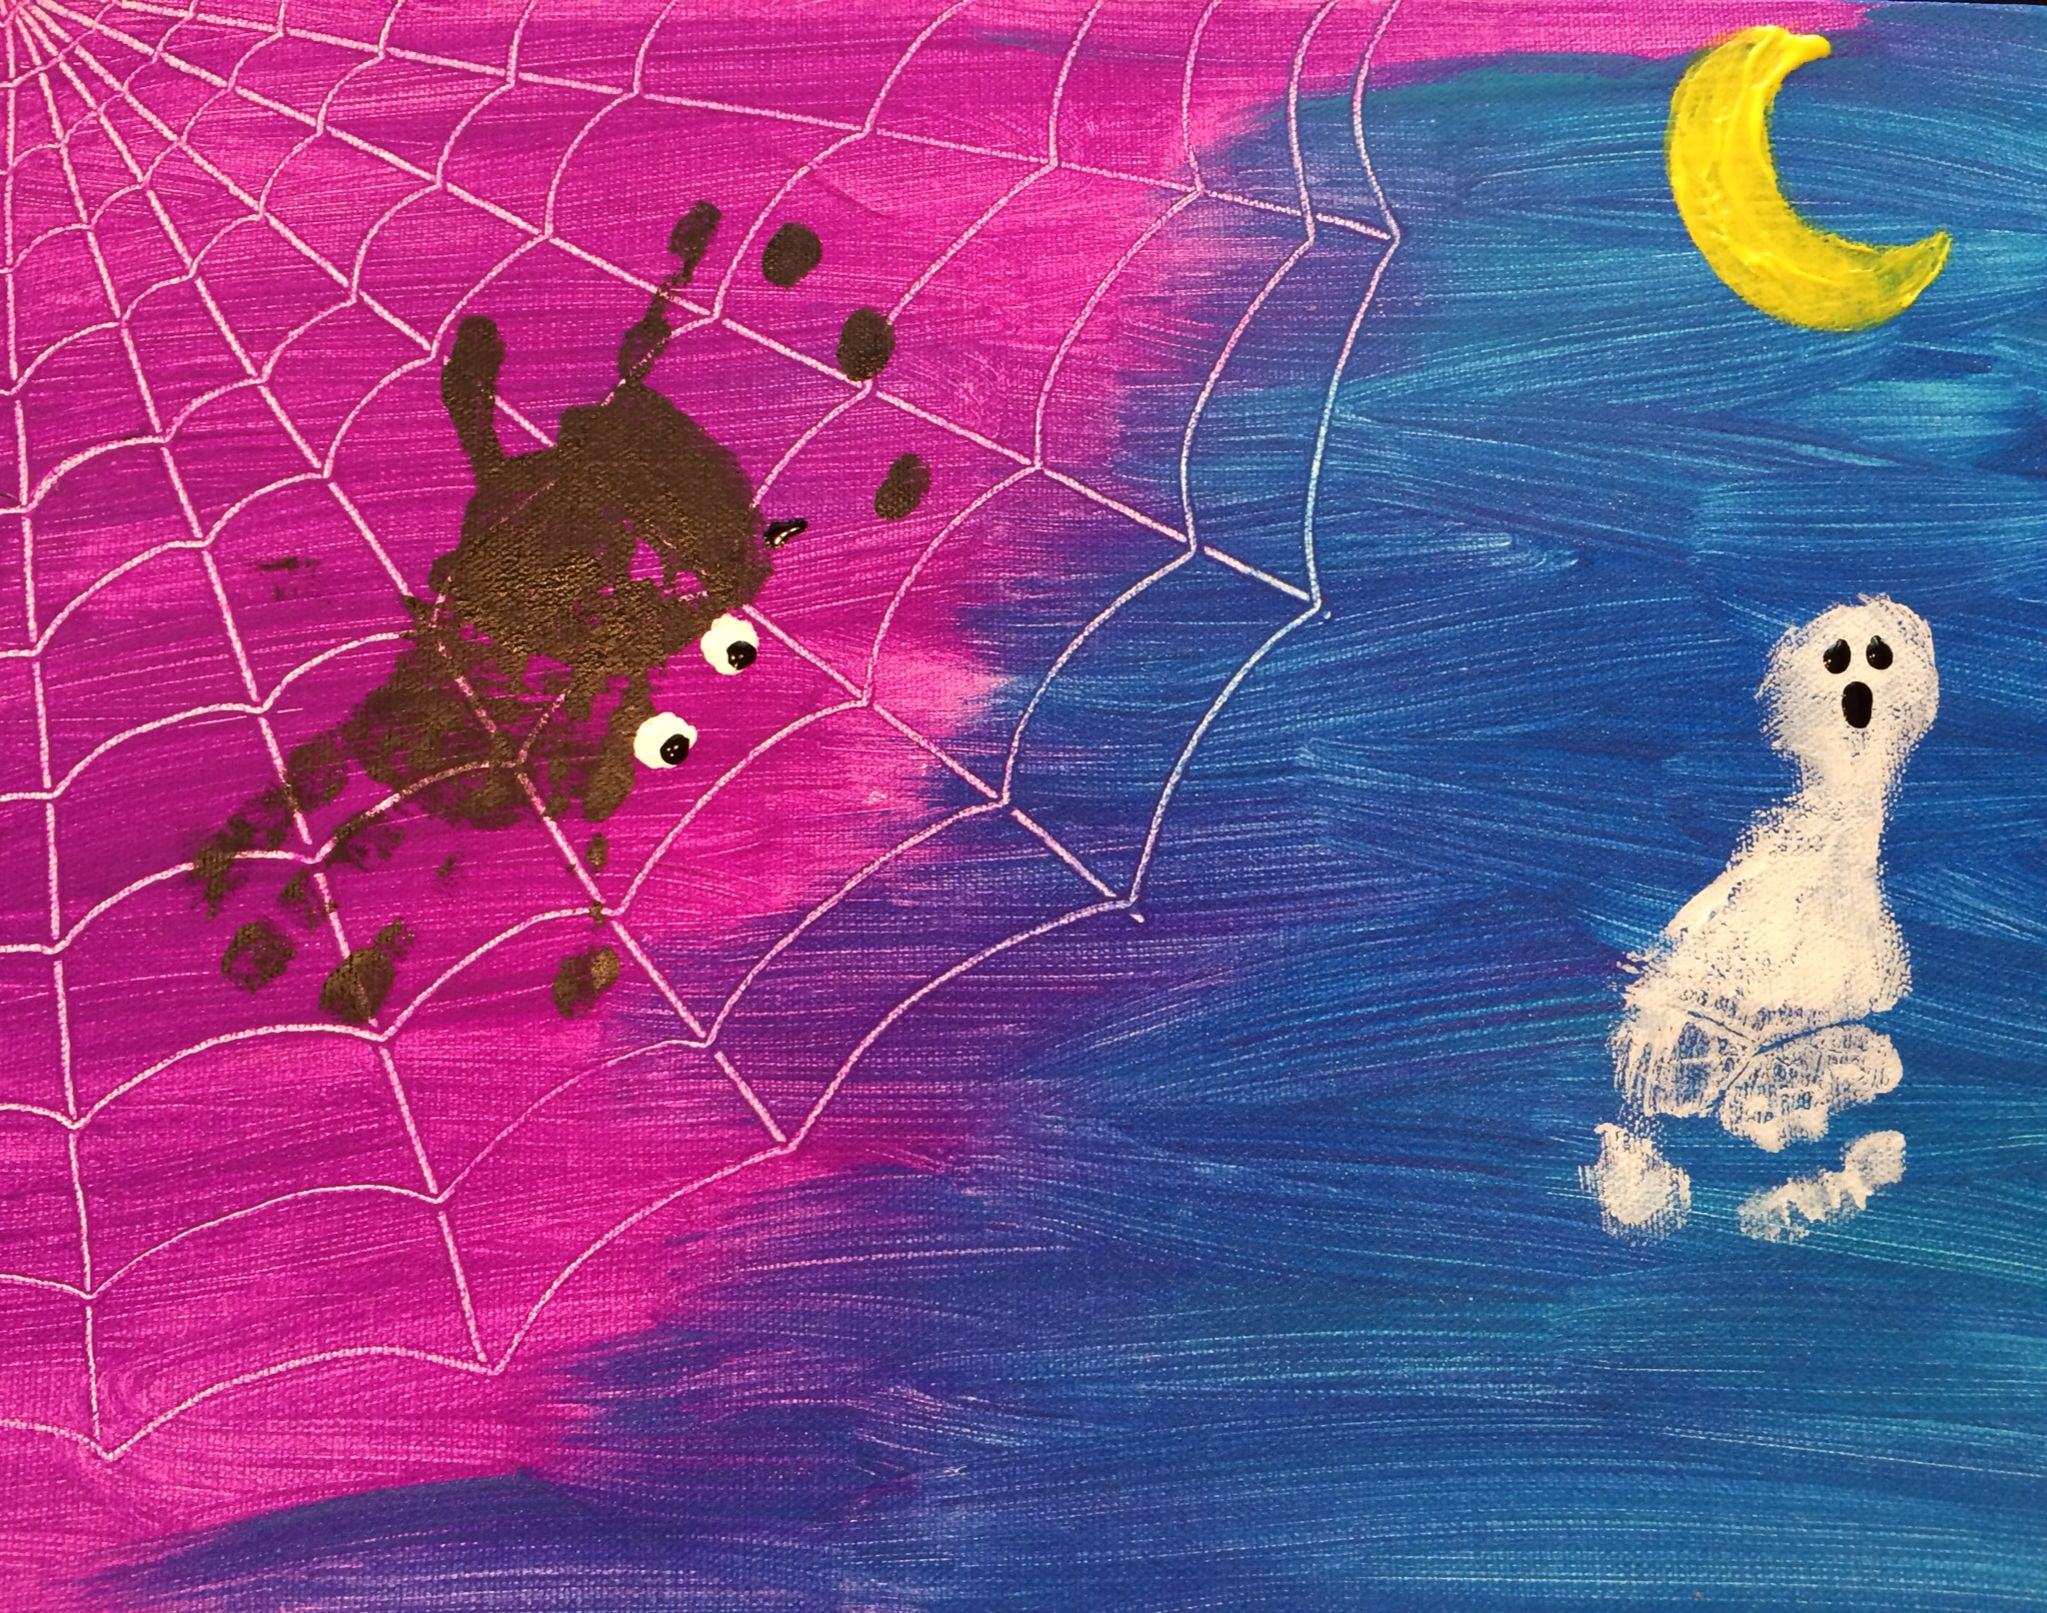 Drawing Straight Lines With Brush In Photo : Halloween. add a few drops of two night time paints and brush on